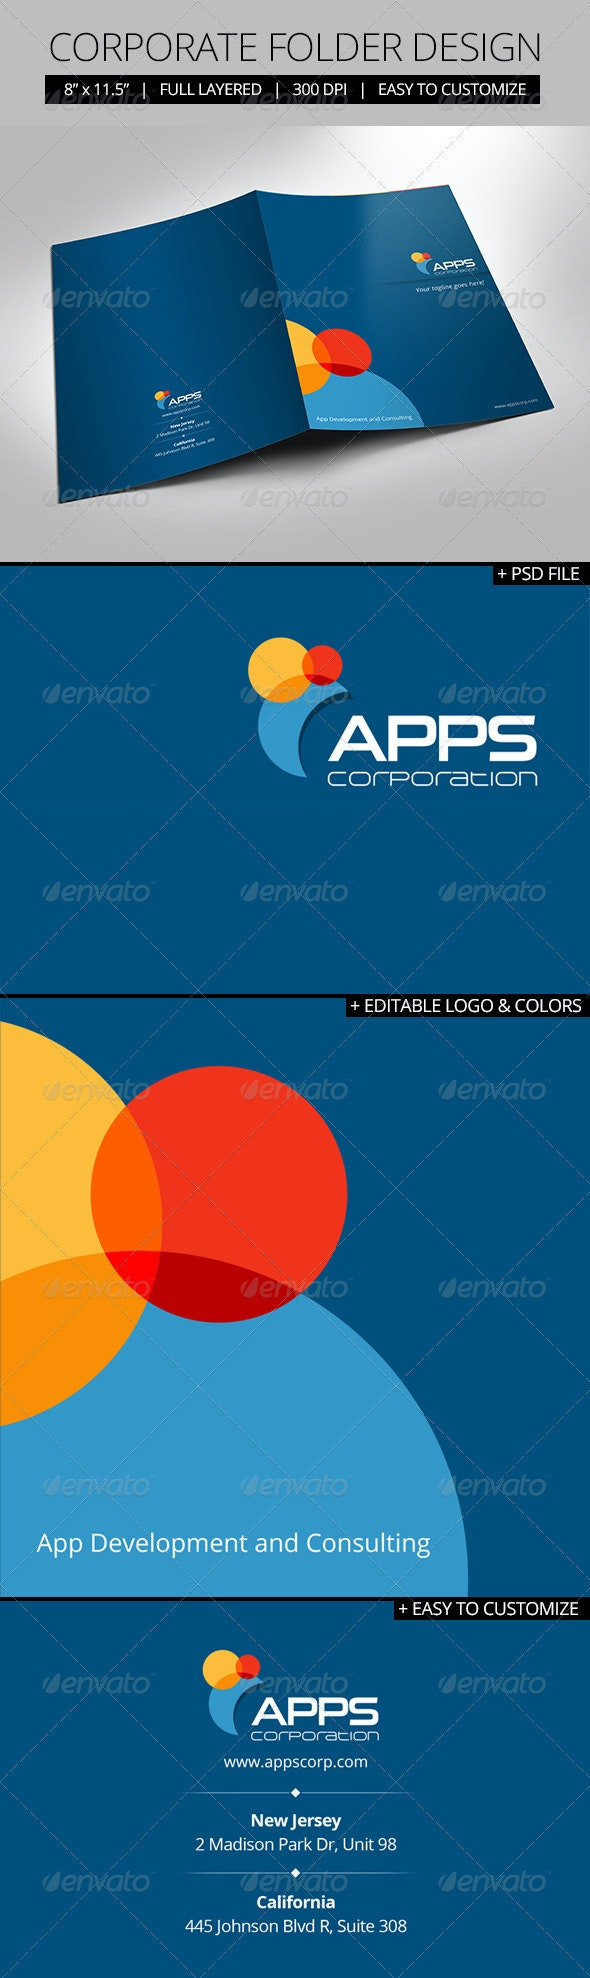 Corporate Folder Design - Stationery Print Templates